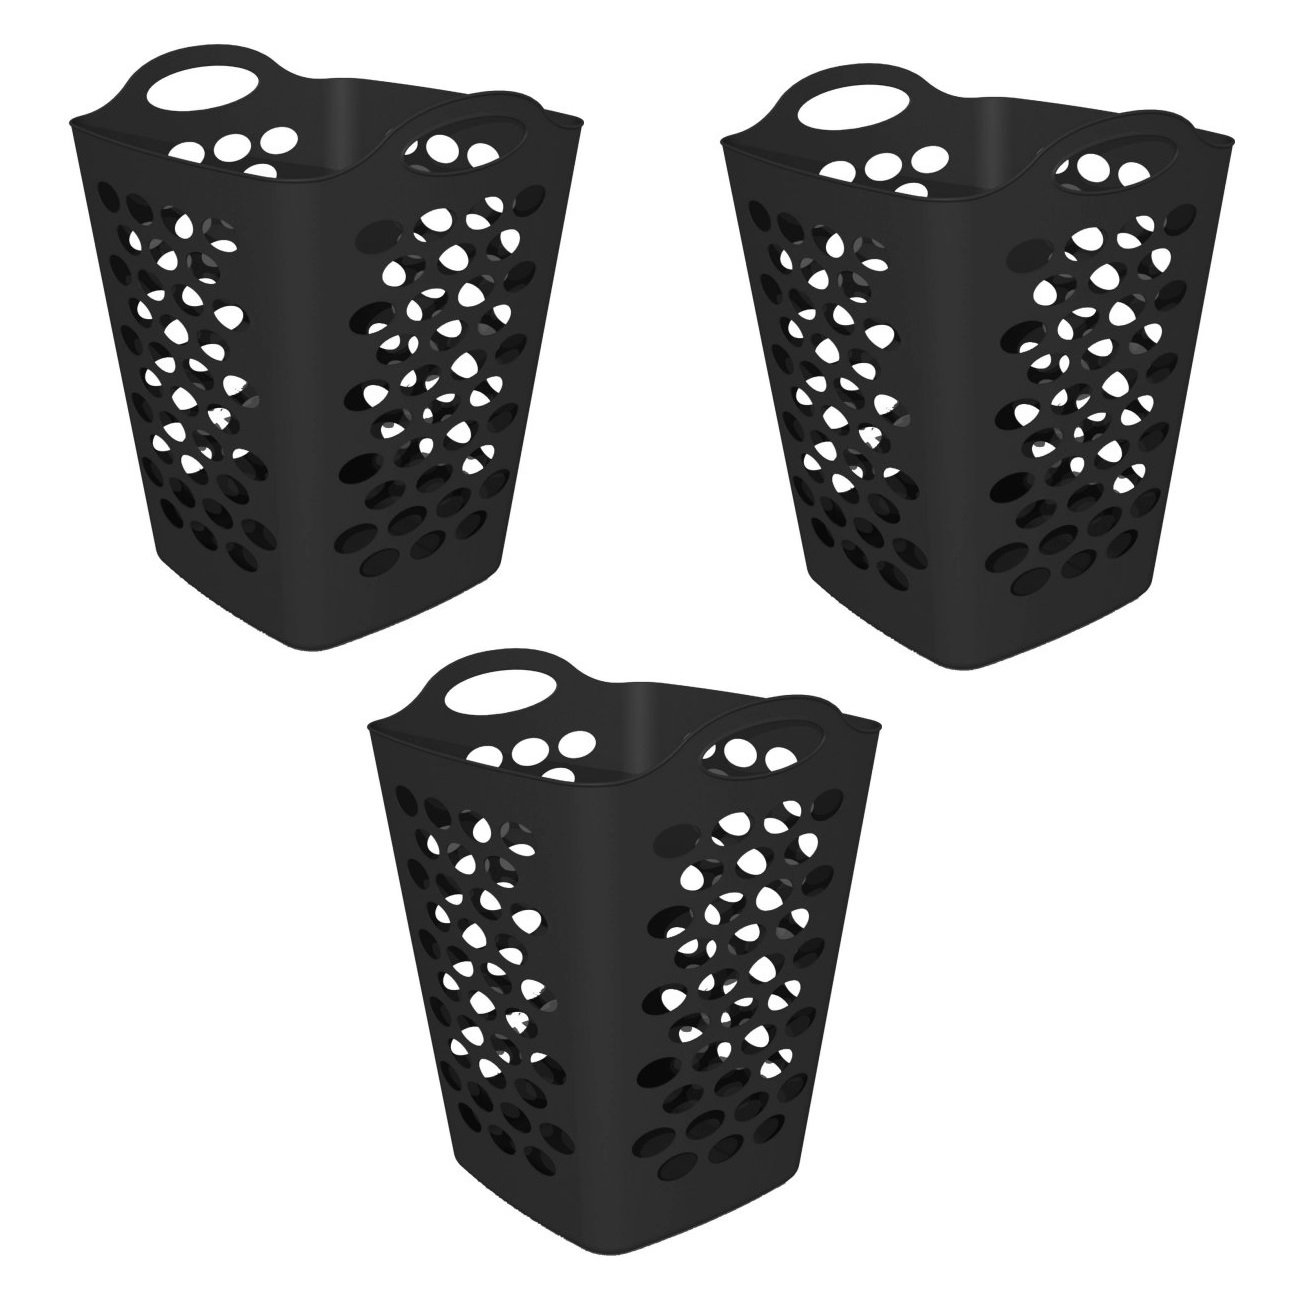 Mainstays 2 BU Flex Laundry Hamper, Black - 3 PIECES